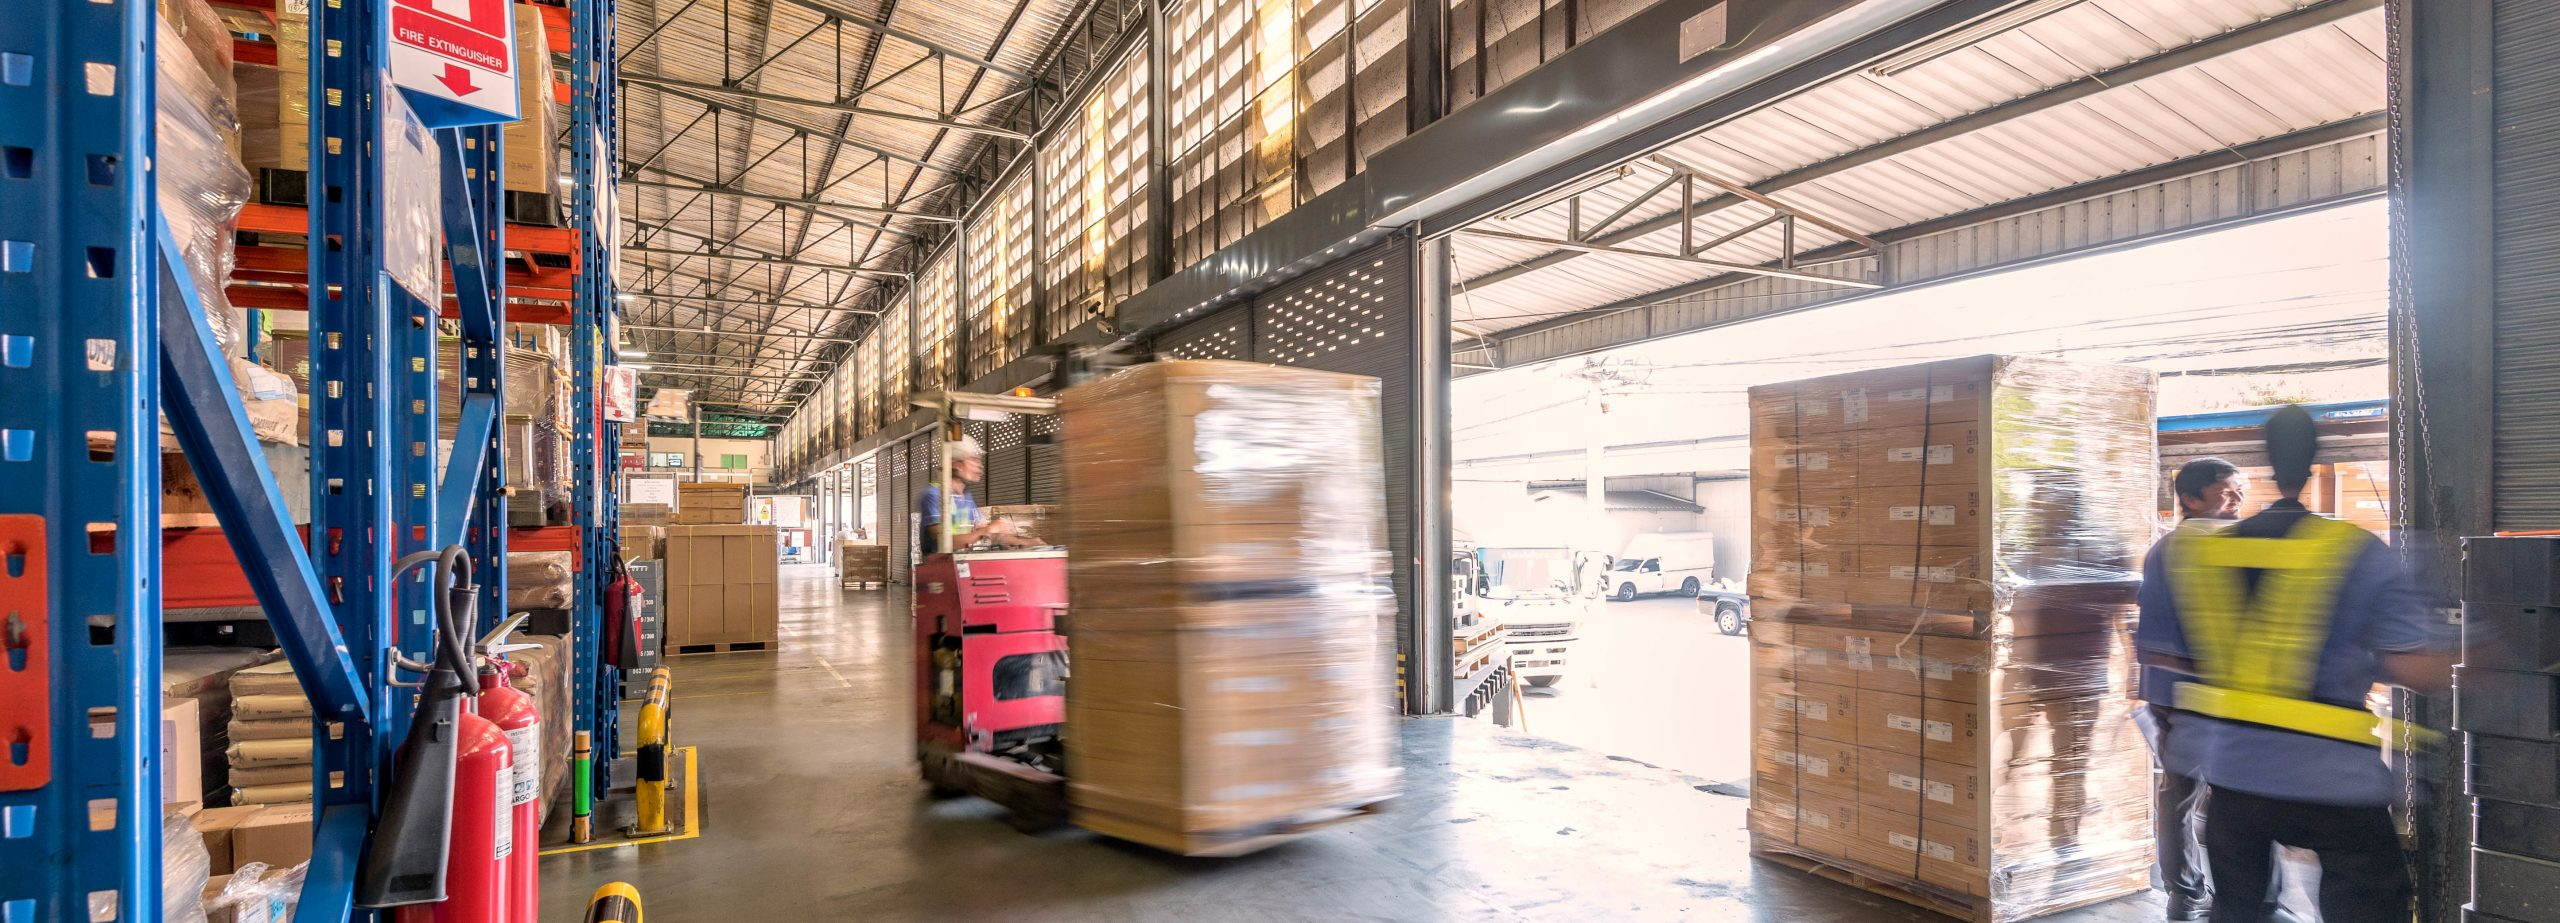 Truck drivning in a warehouse